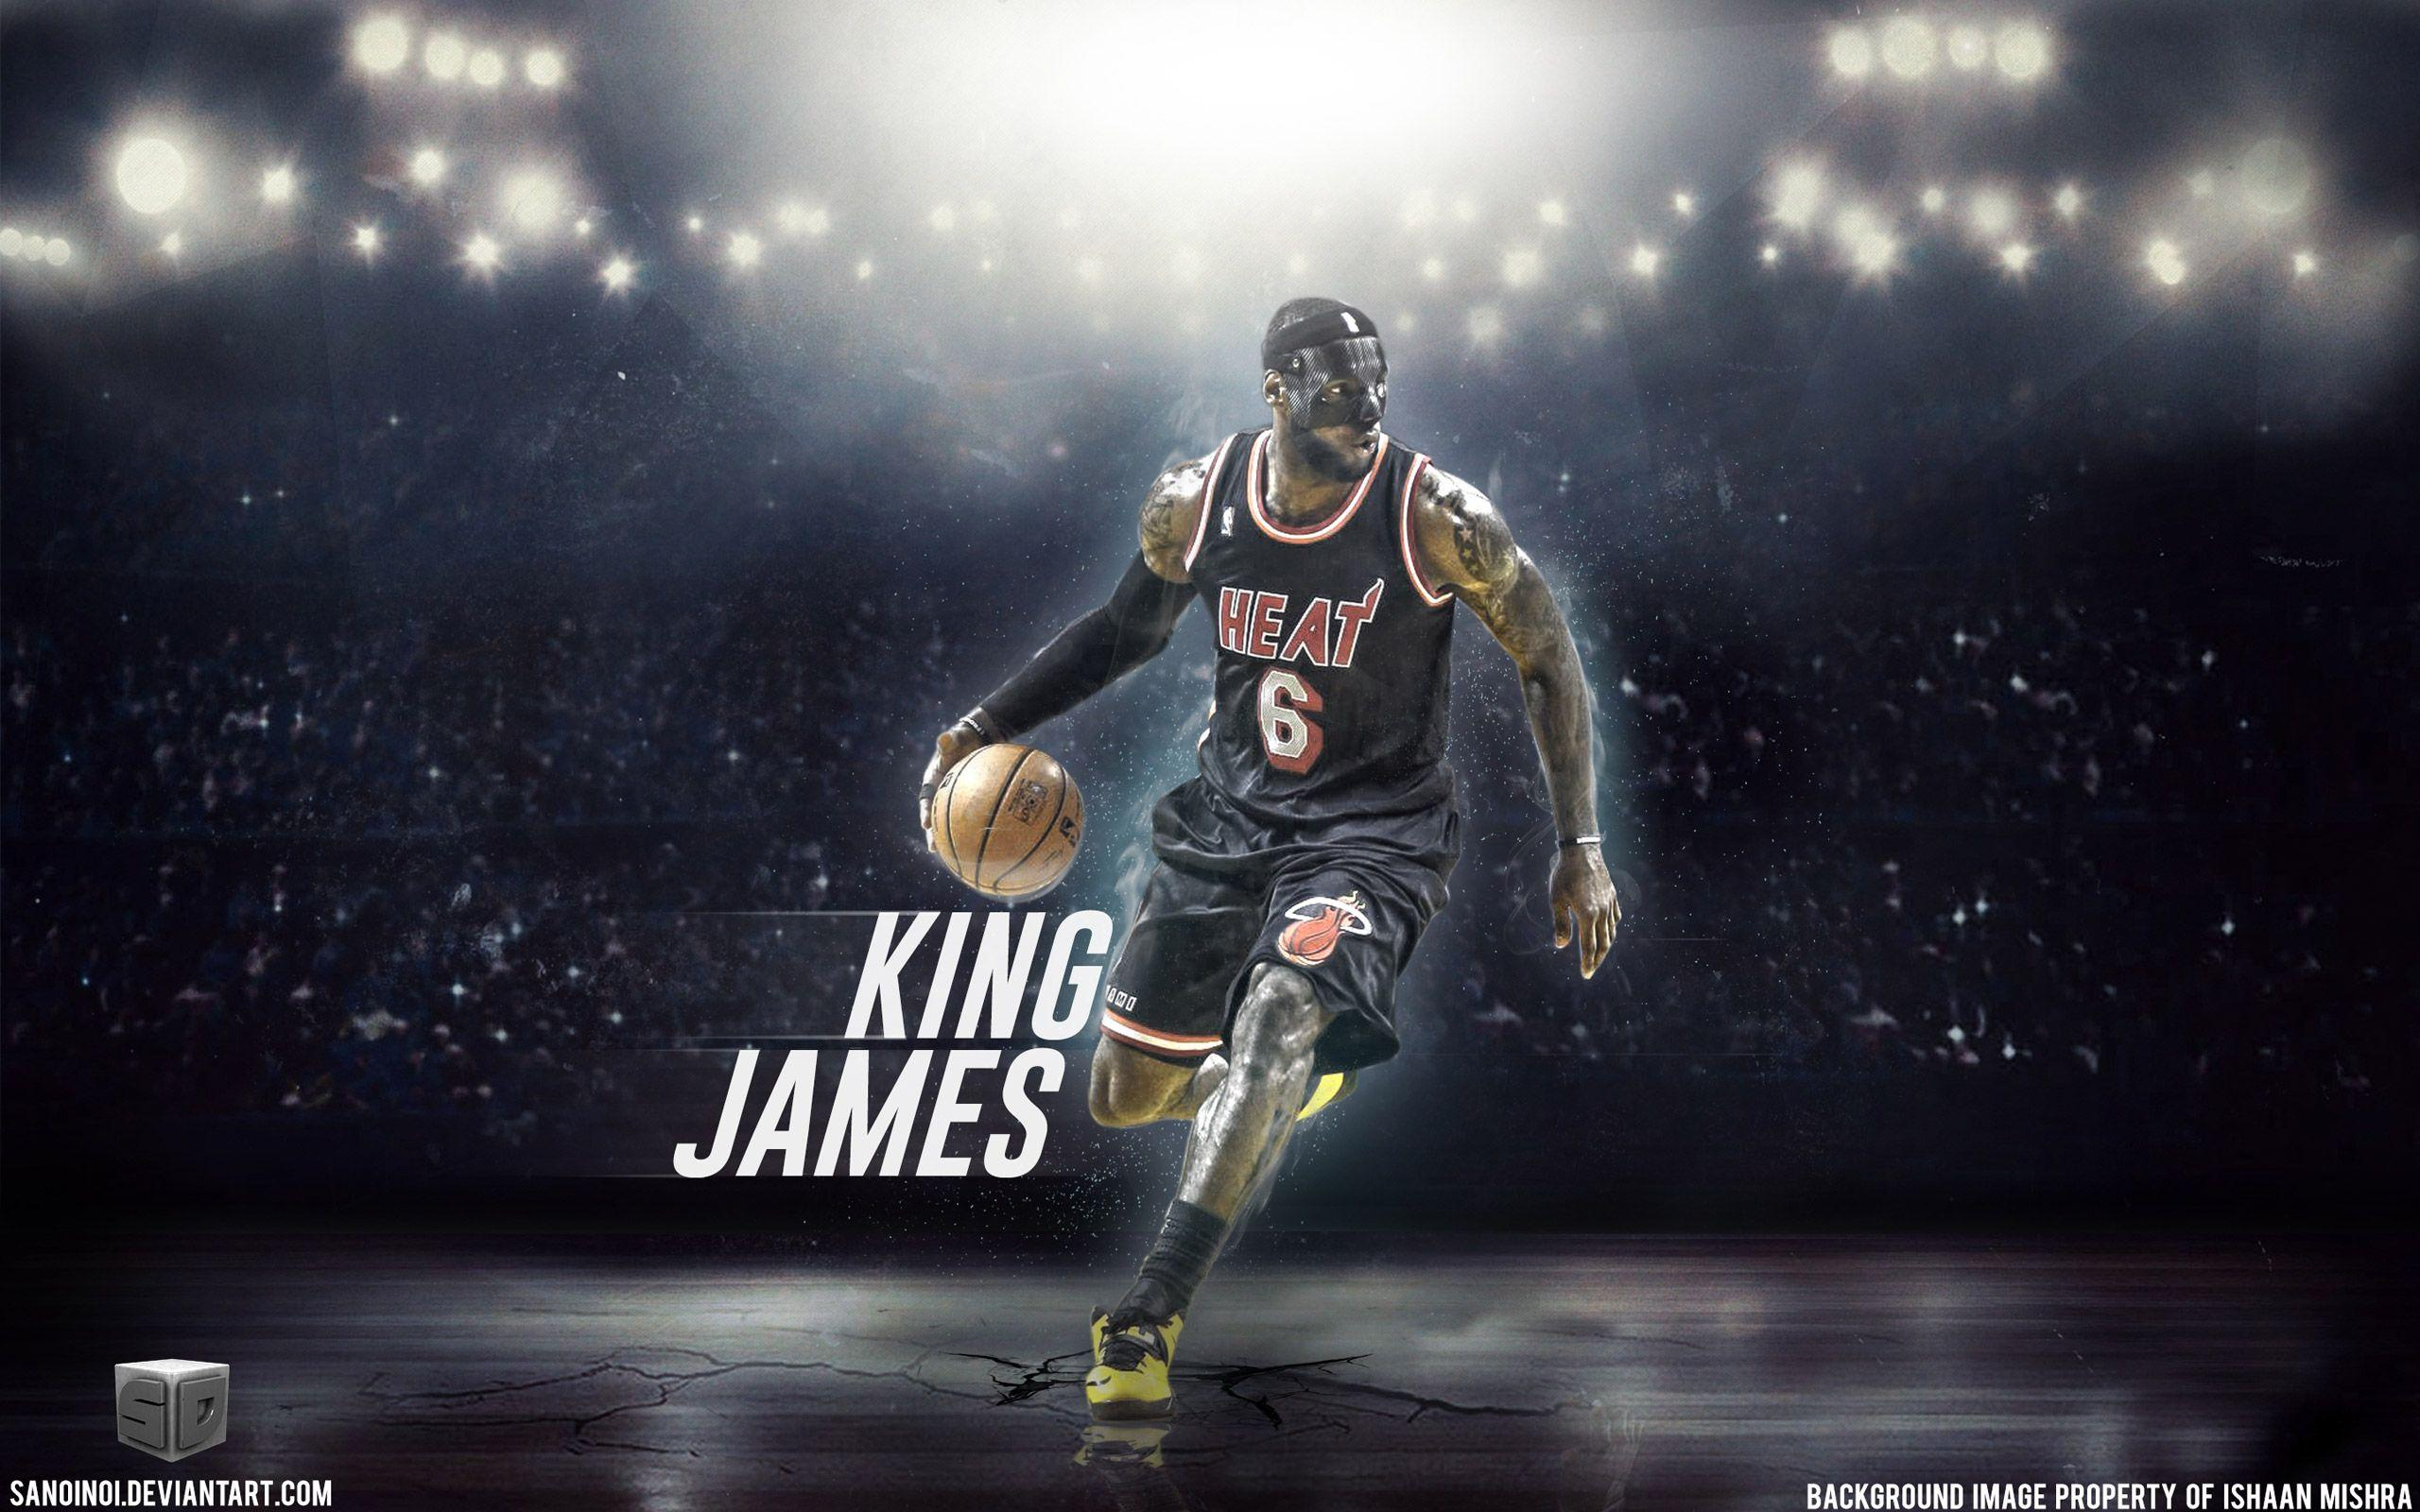 Lebron James Mvp Wallpapers 2016 - Wallpaper Cave